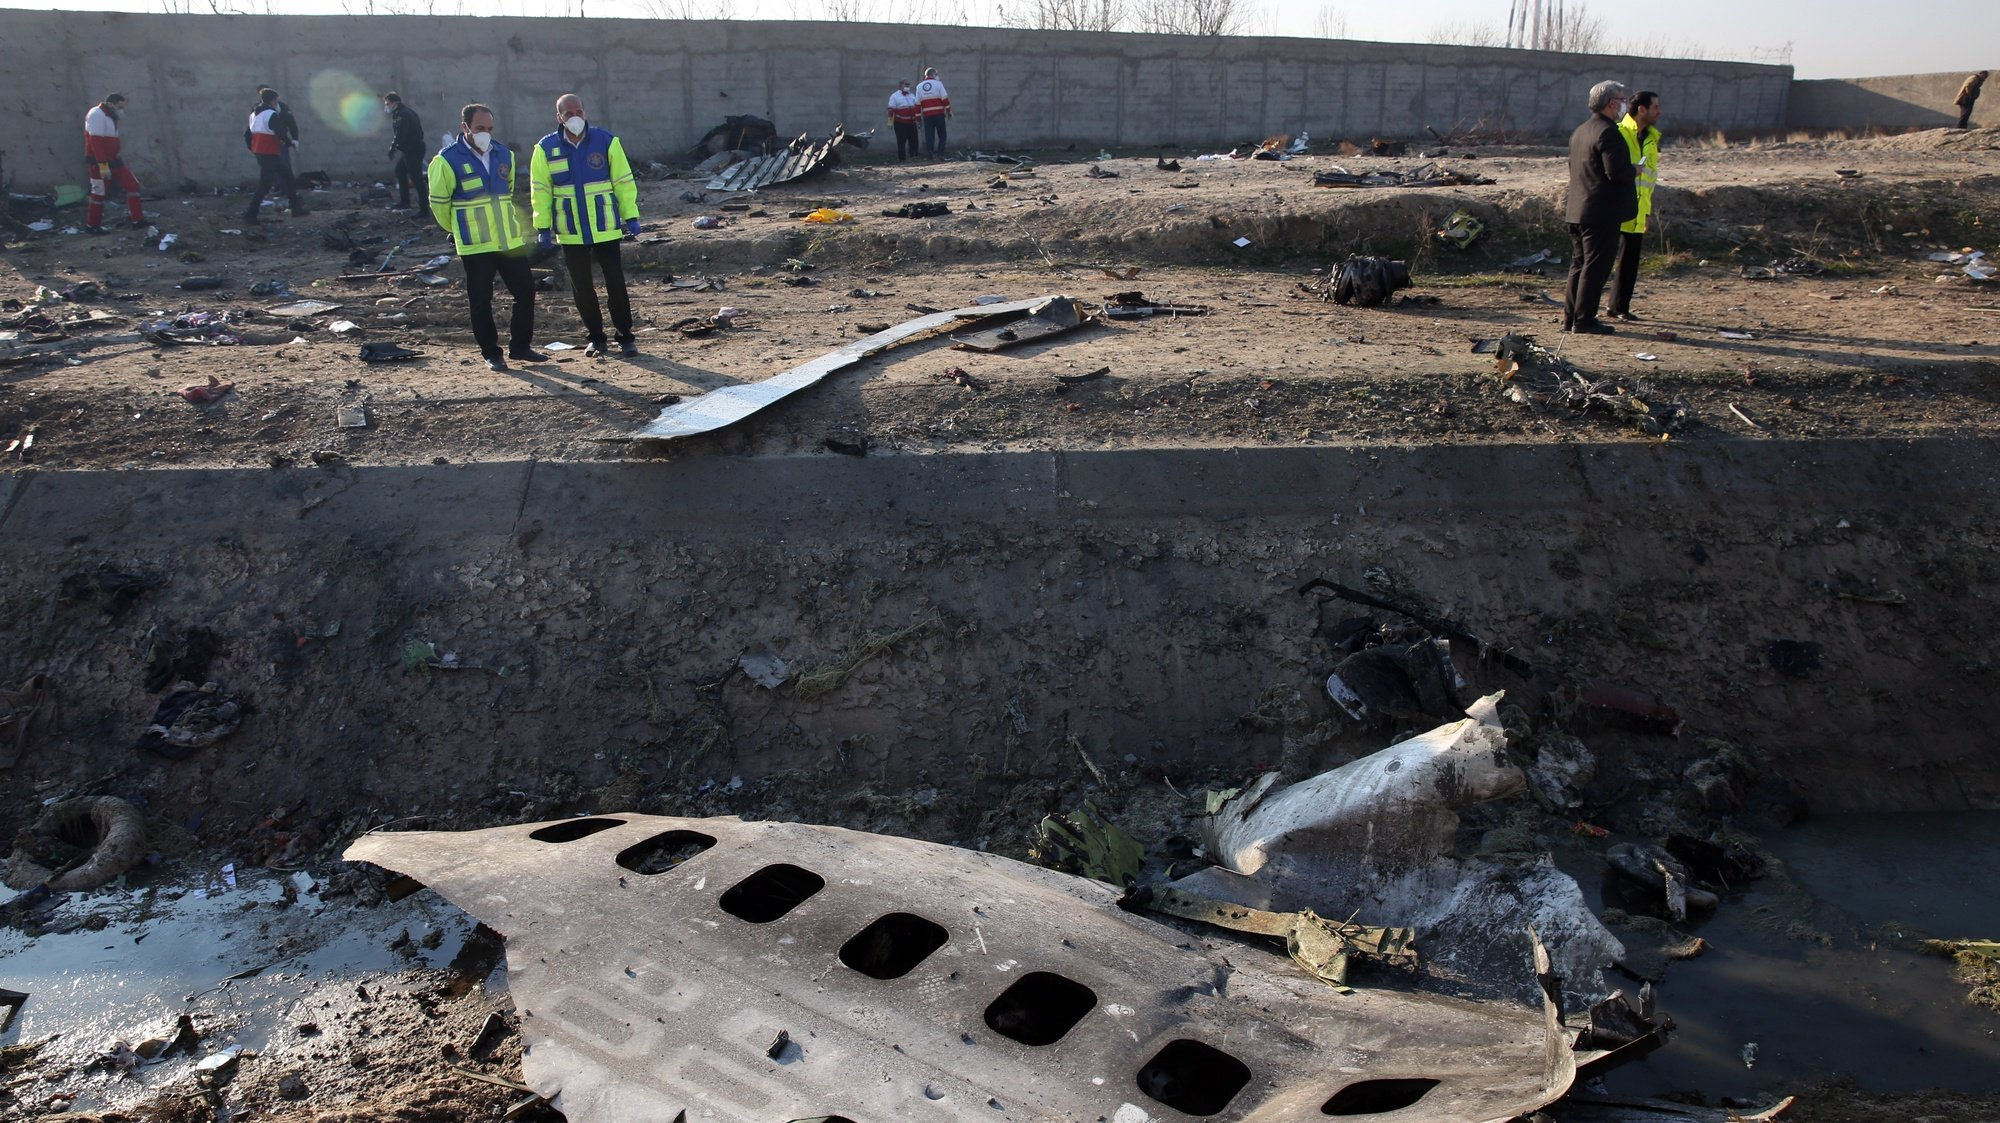 epa08619656 (FILE) - Officials stand near the wreckage after an Ukraine International Airlines Boeing 737-800 carrying 176 people crashed near Imam Khomeini Airport in Tehran, killing everyone on board, in Shahriar, Iran, 08 January 2020 (reissued 23 August 2020). Investigators in Iran said that the cockpit black box recorded a conversation between the pilots just after a missile hit the Ukrainian passenger jet in January 2019. The Beoing 737 was mistakenly shot down by Iran, killing 176 passengers on board.  EPA/ABEDIN TAHERKENAREH *** Local Caption *** 56222509